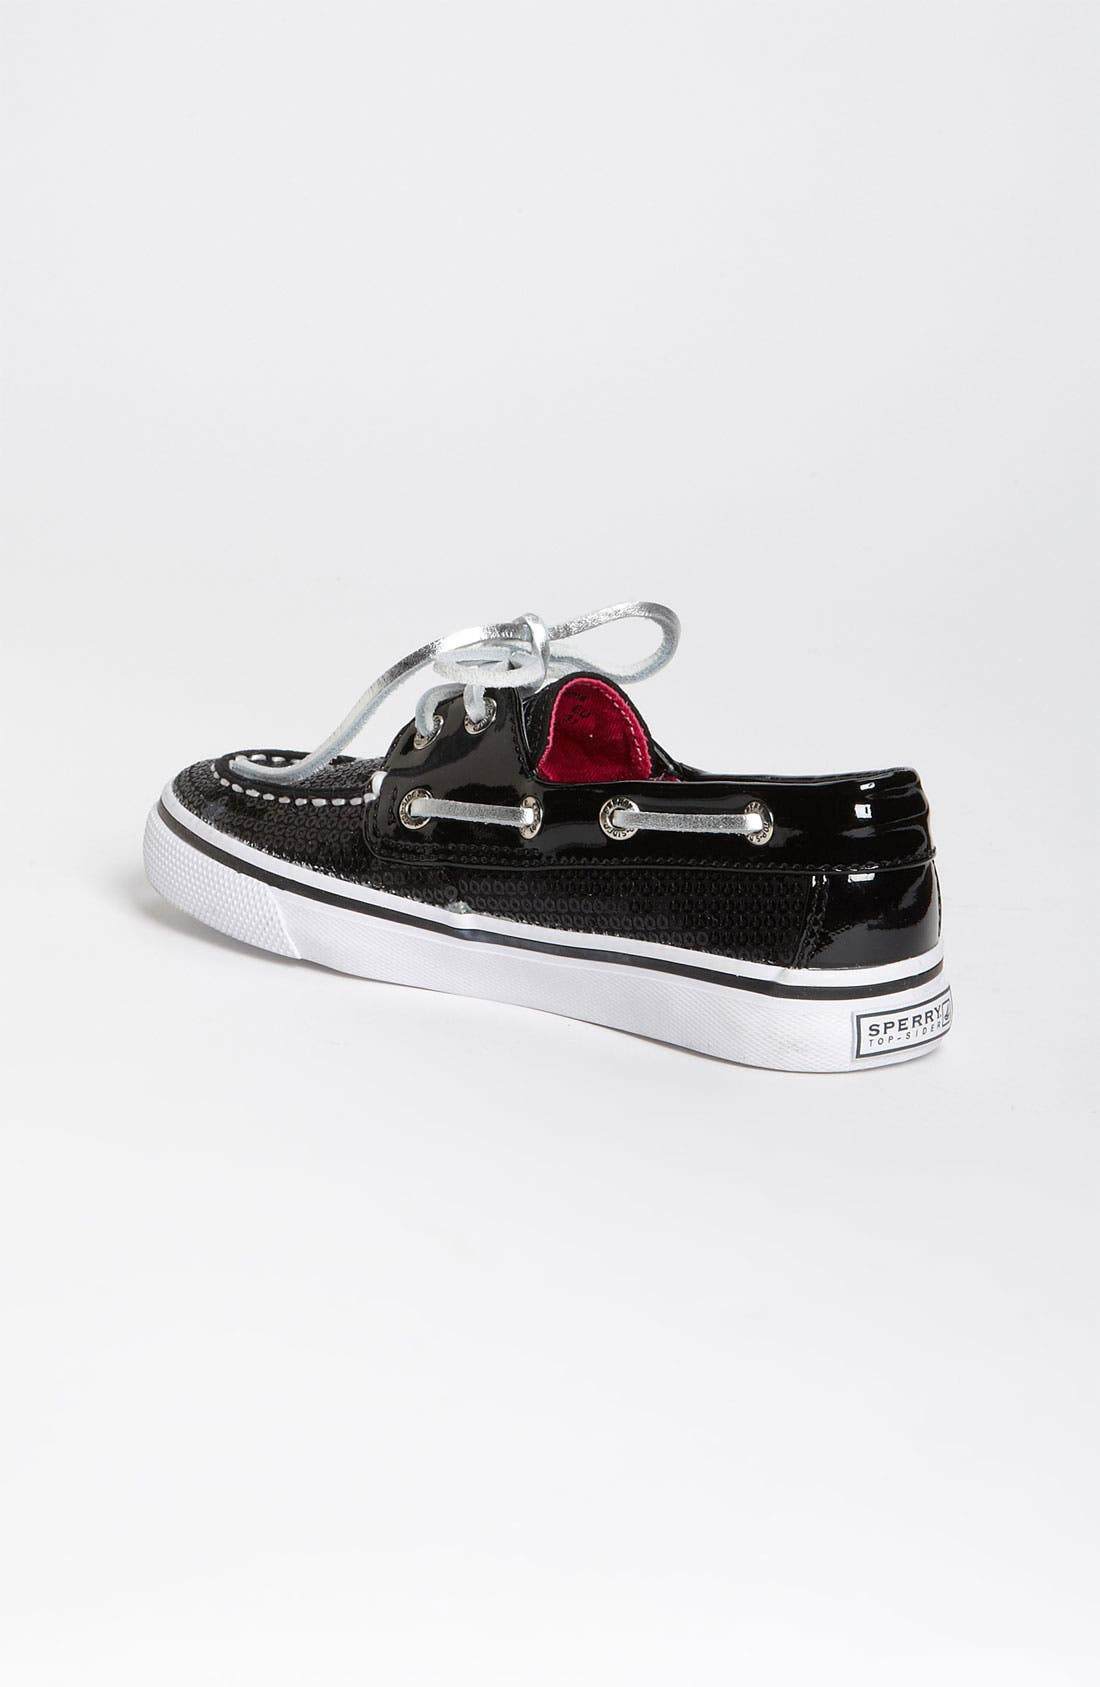 Alternate Image 2  - Sperry Top-Sider® Kids 'Bahama' Boat Shoe (Walker, Toddler, Little Kid, Big Kid)